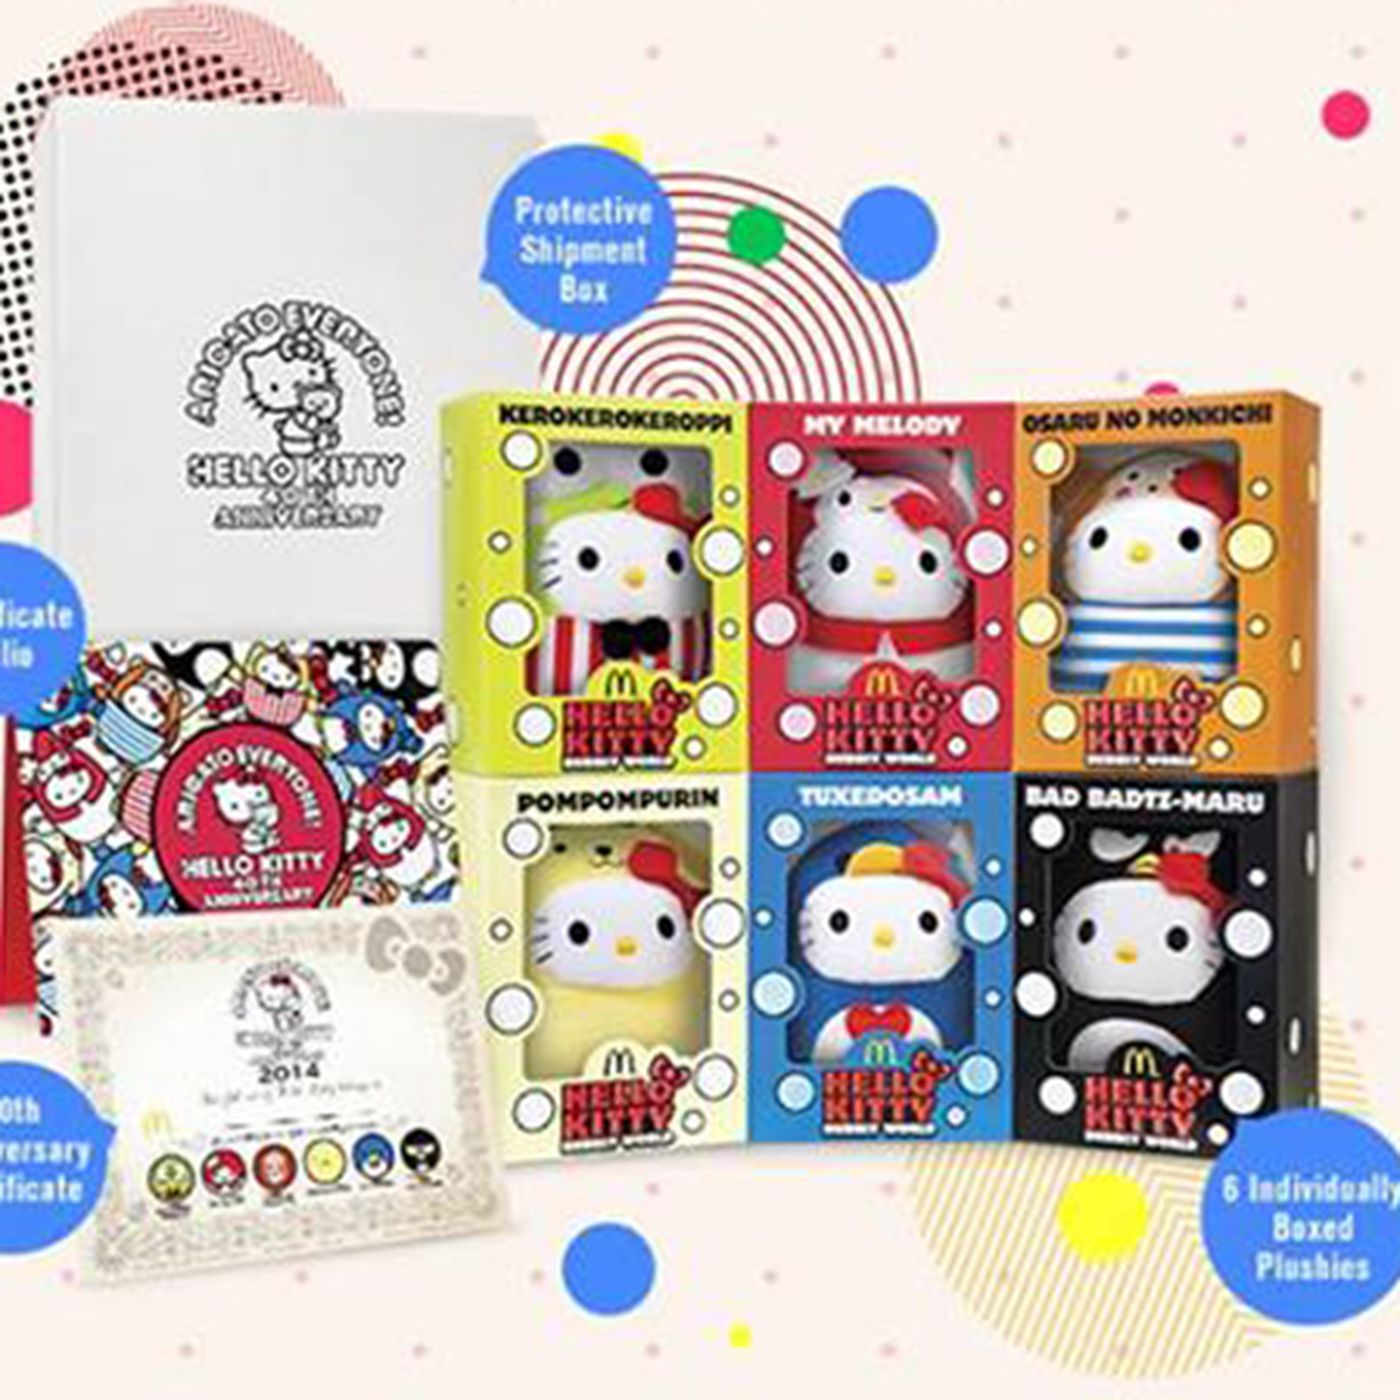 d5dd89125 Singapore Braces for Insanity as McDonald's Launches Hello Kitty Toys